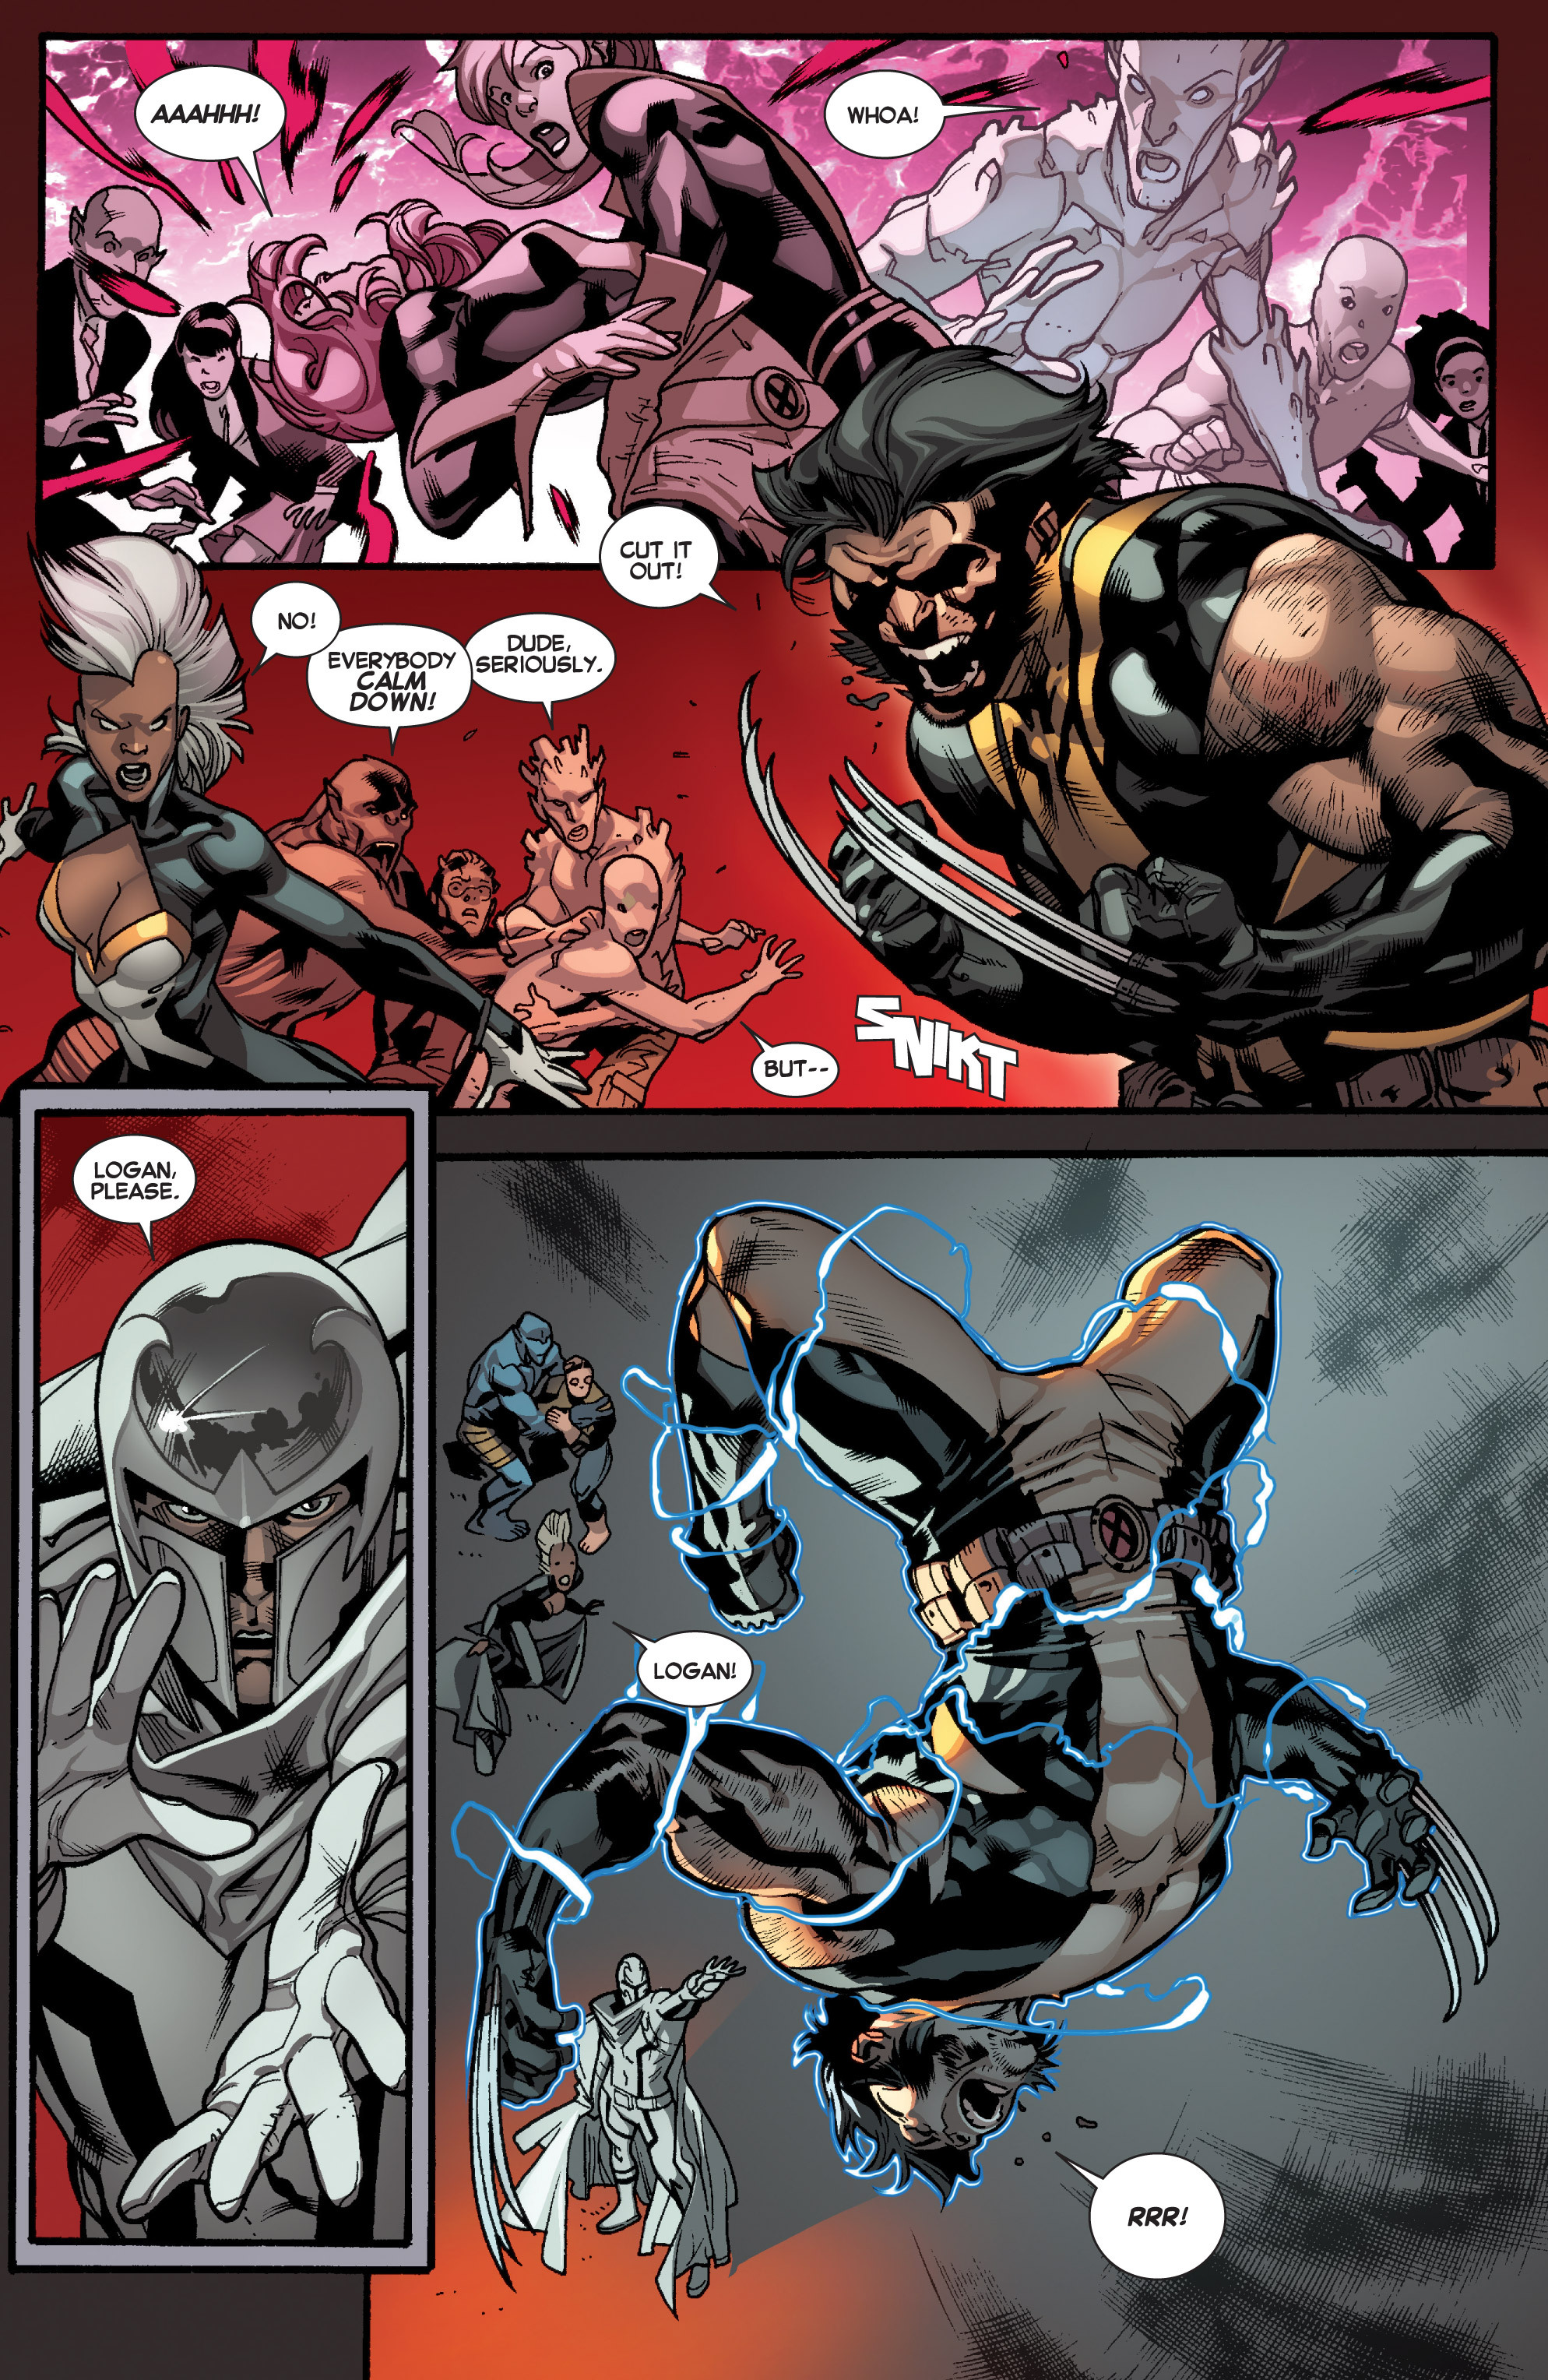 Read online All-New X-Men (2013) comic -  Issue # _Special - Out Of Their Depth - 10